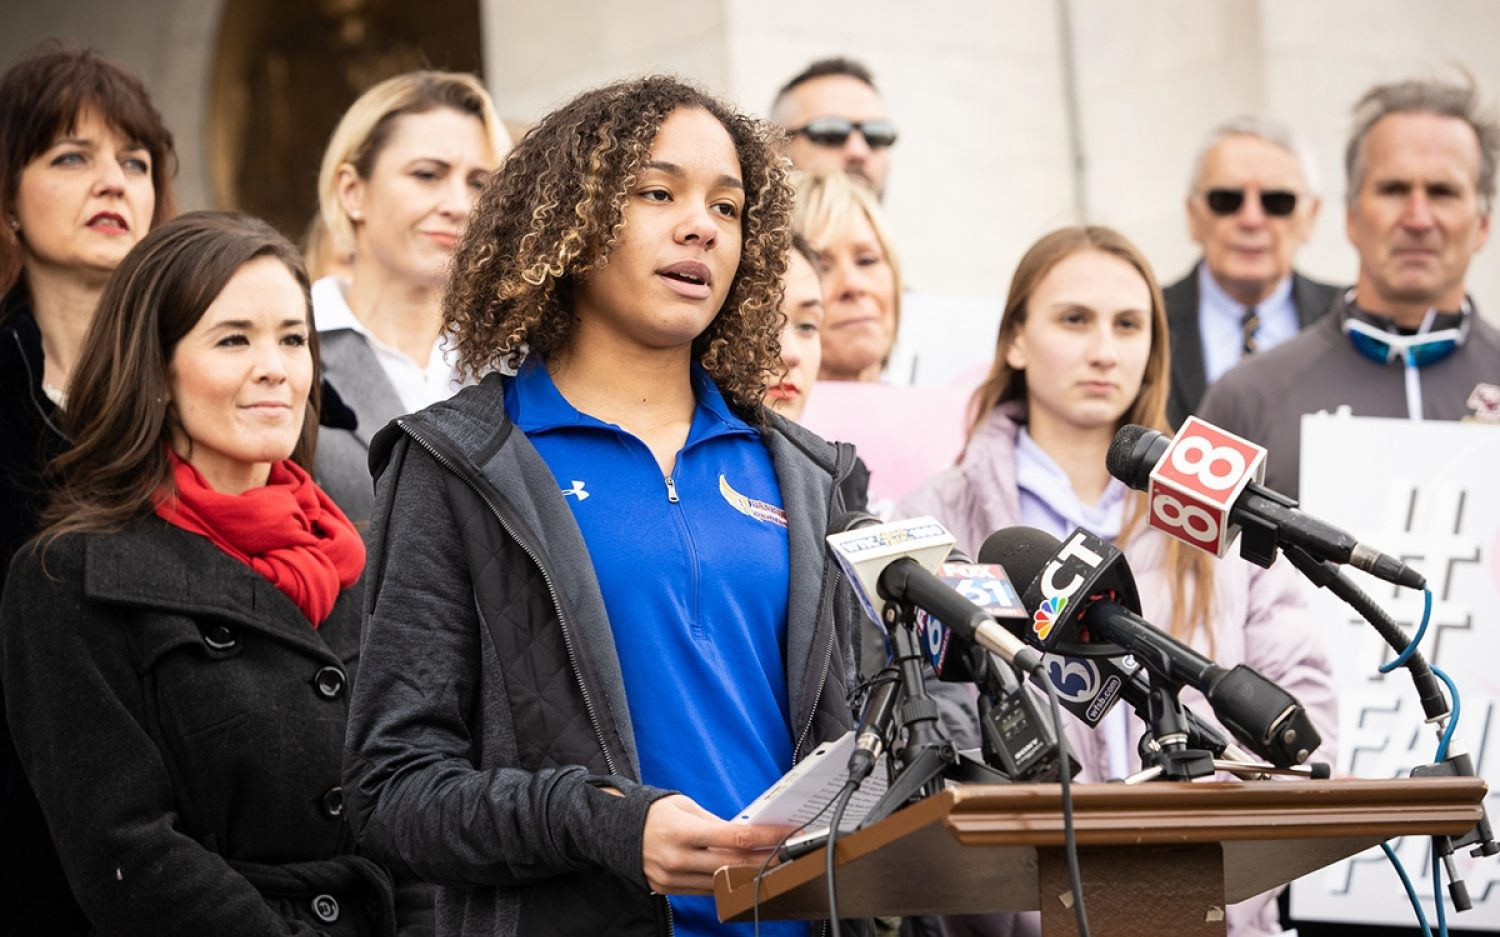 Positive signs in the fight for fairness in women's sports